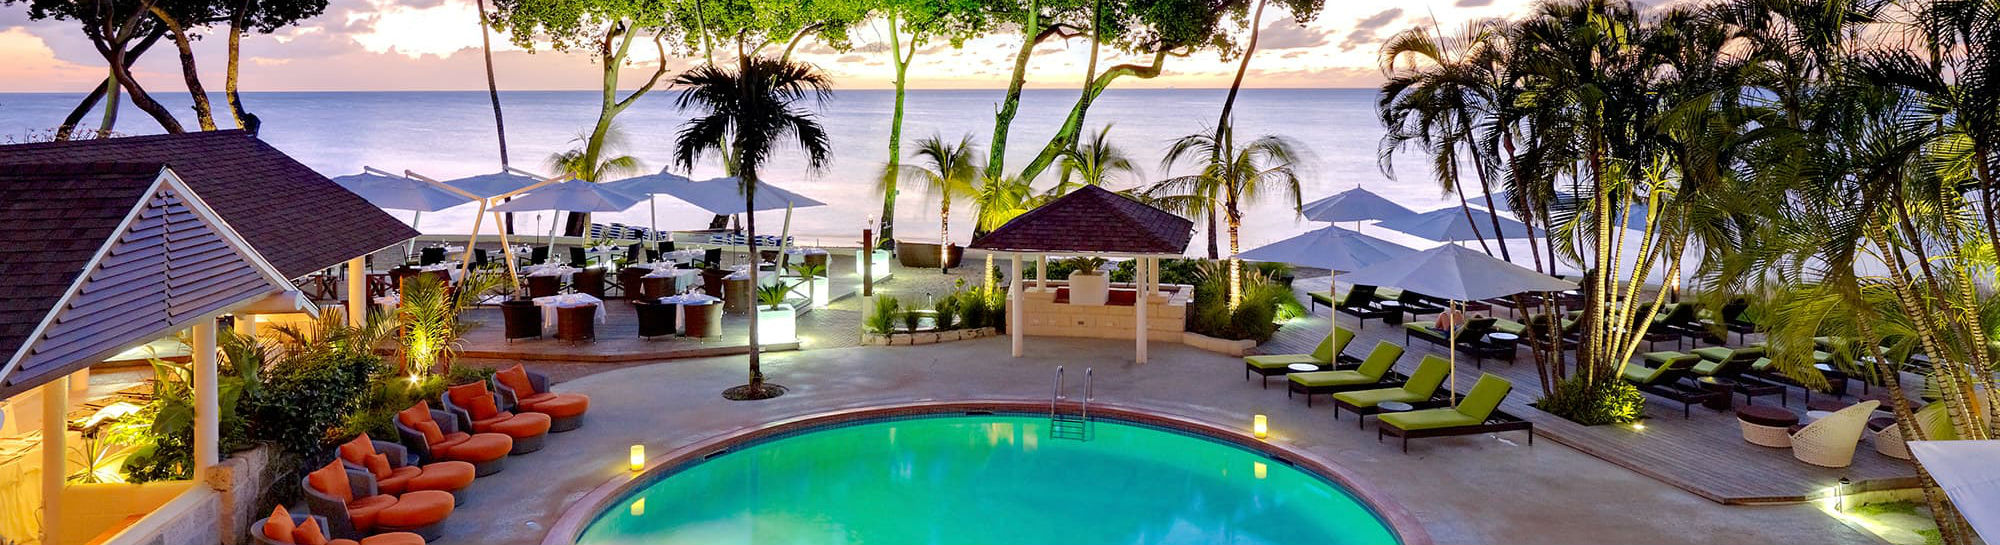 beach & swimming pool at the Tamarind by Elegant Hotels